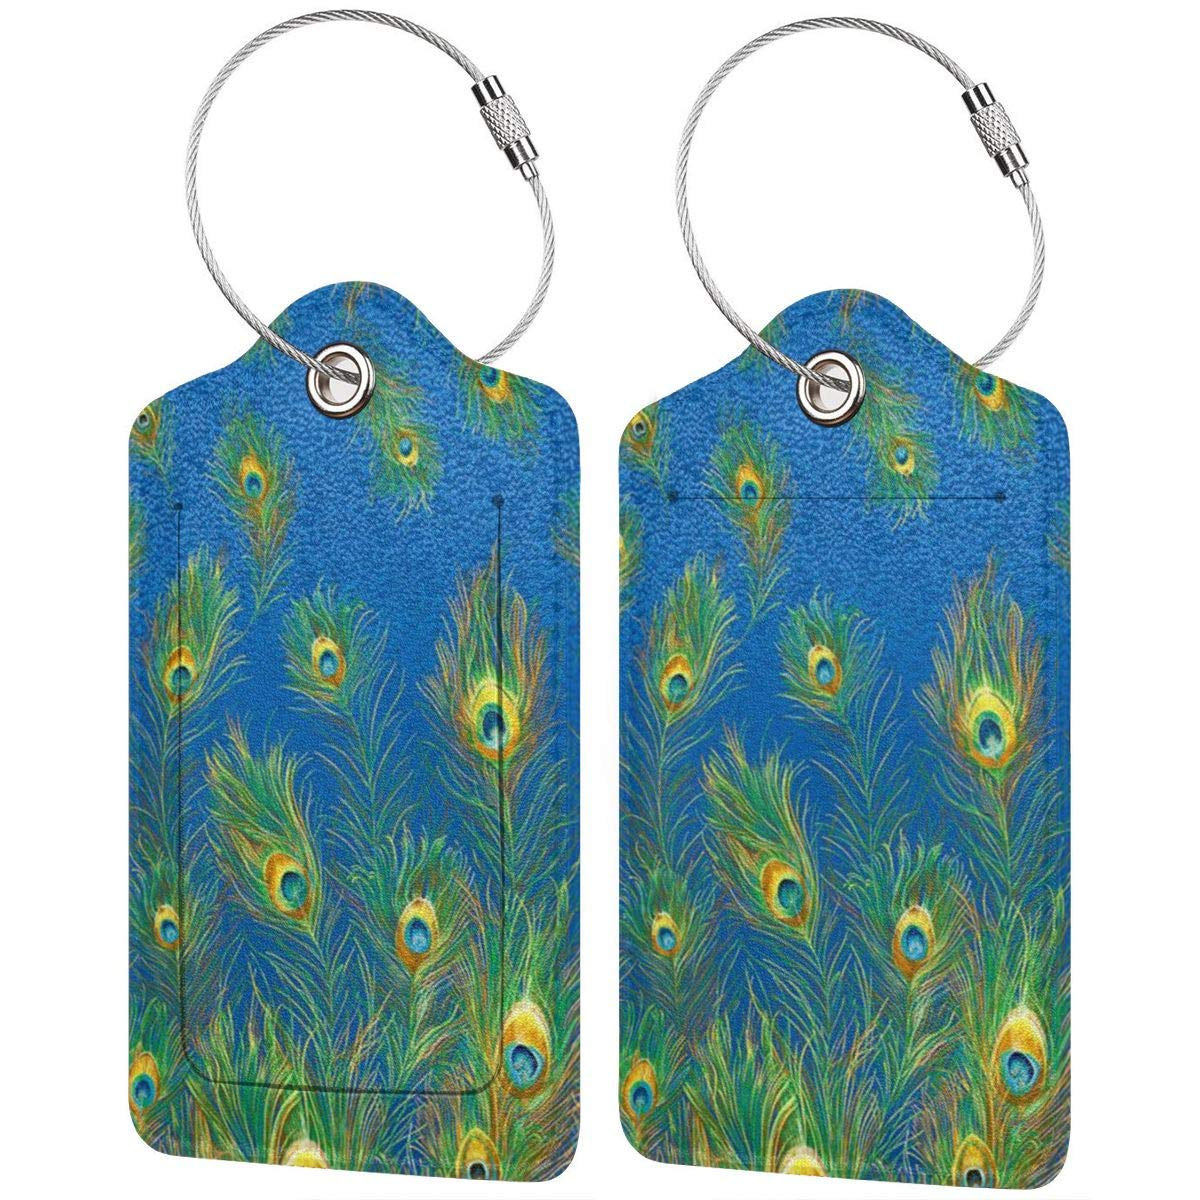 Peacock Feather Pattern Leather Luggage Tags Personalized Privacy Cover With Privacy Flap